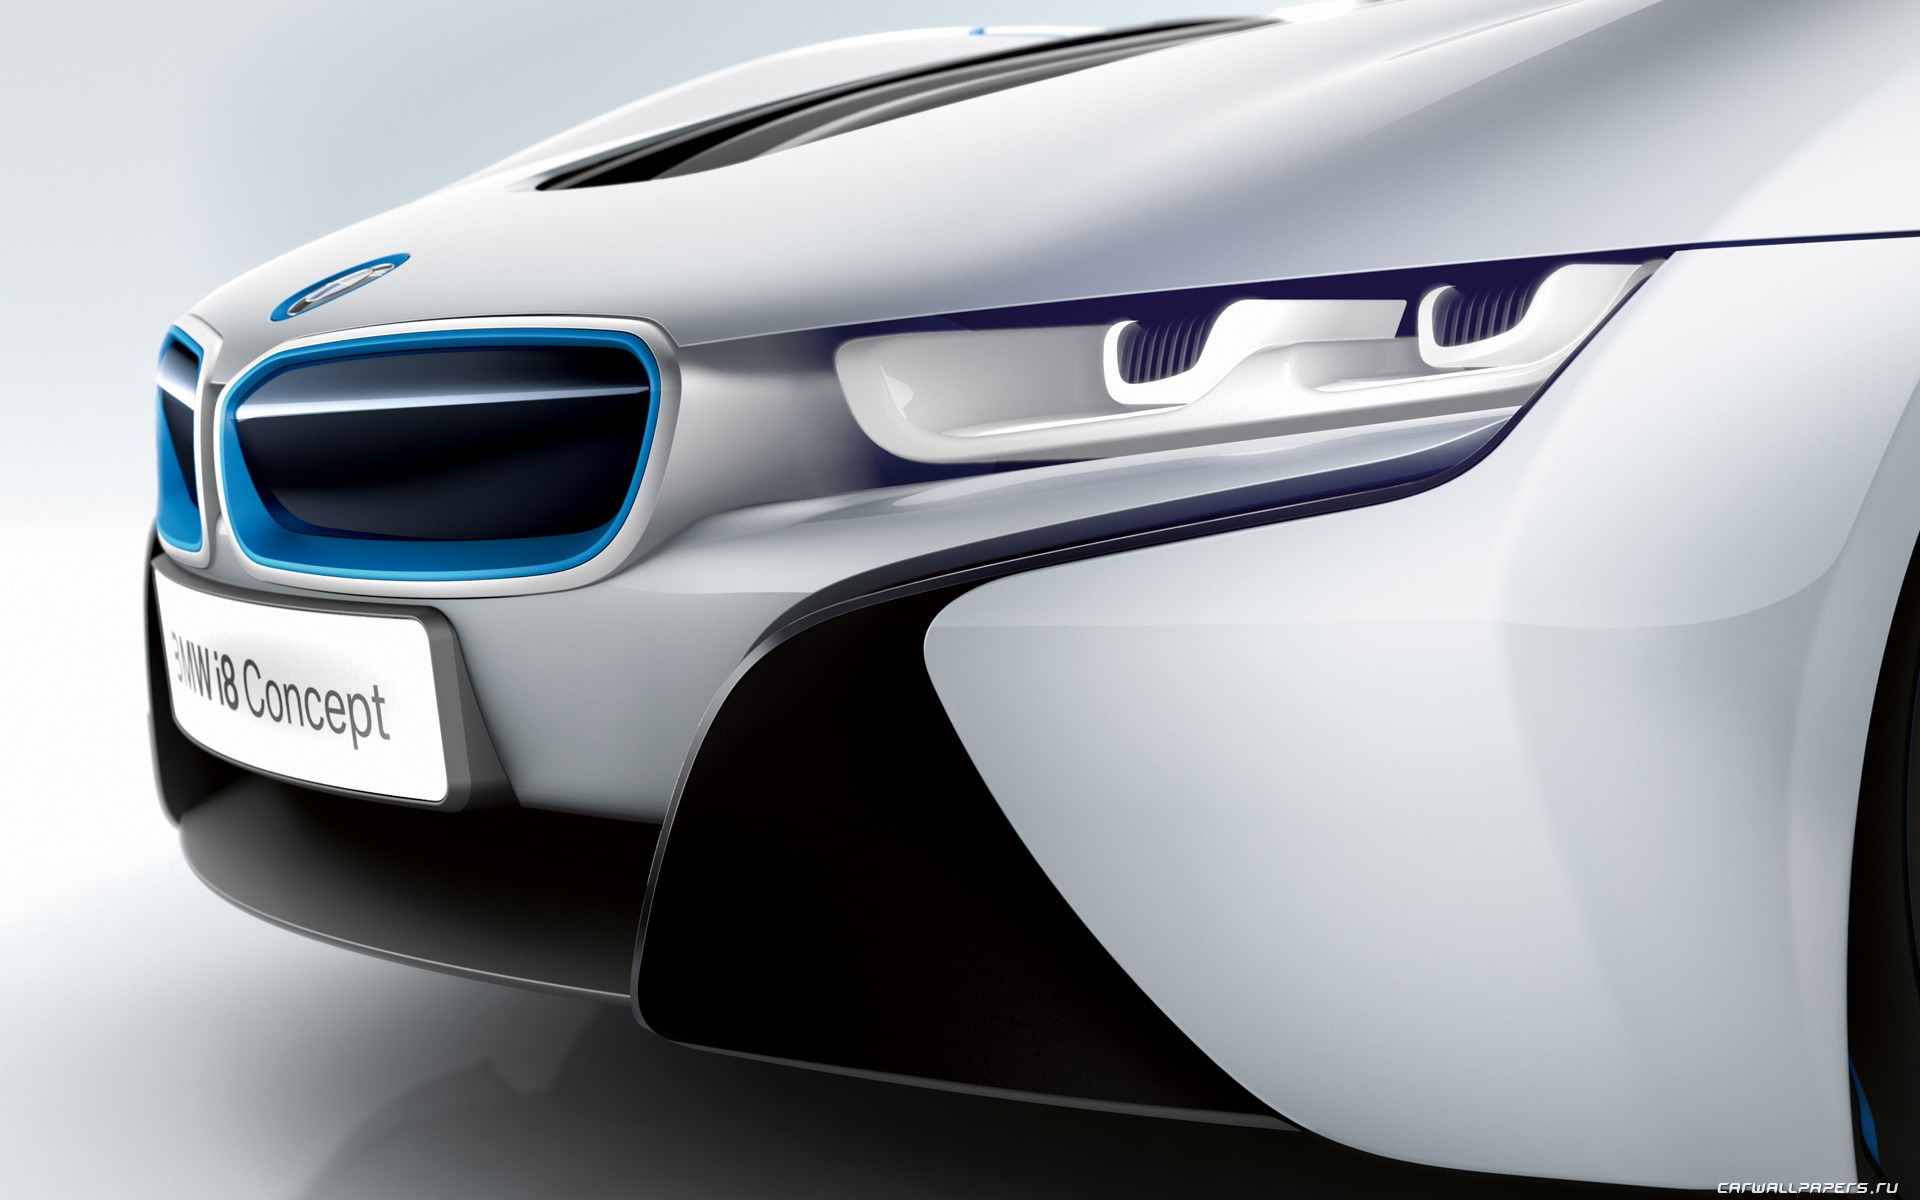 ... BMW 328 Hommage - 2011 HD wallpapers - Auto Wallpapers - V3 Wallpaper